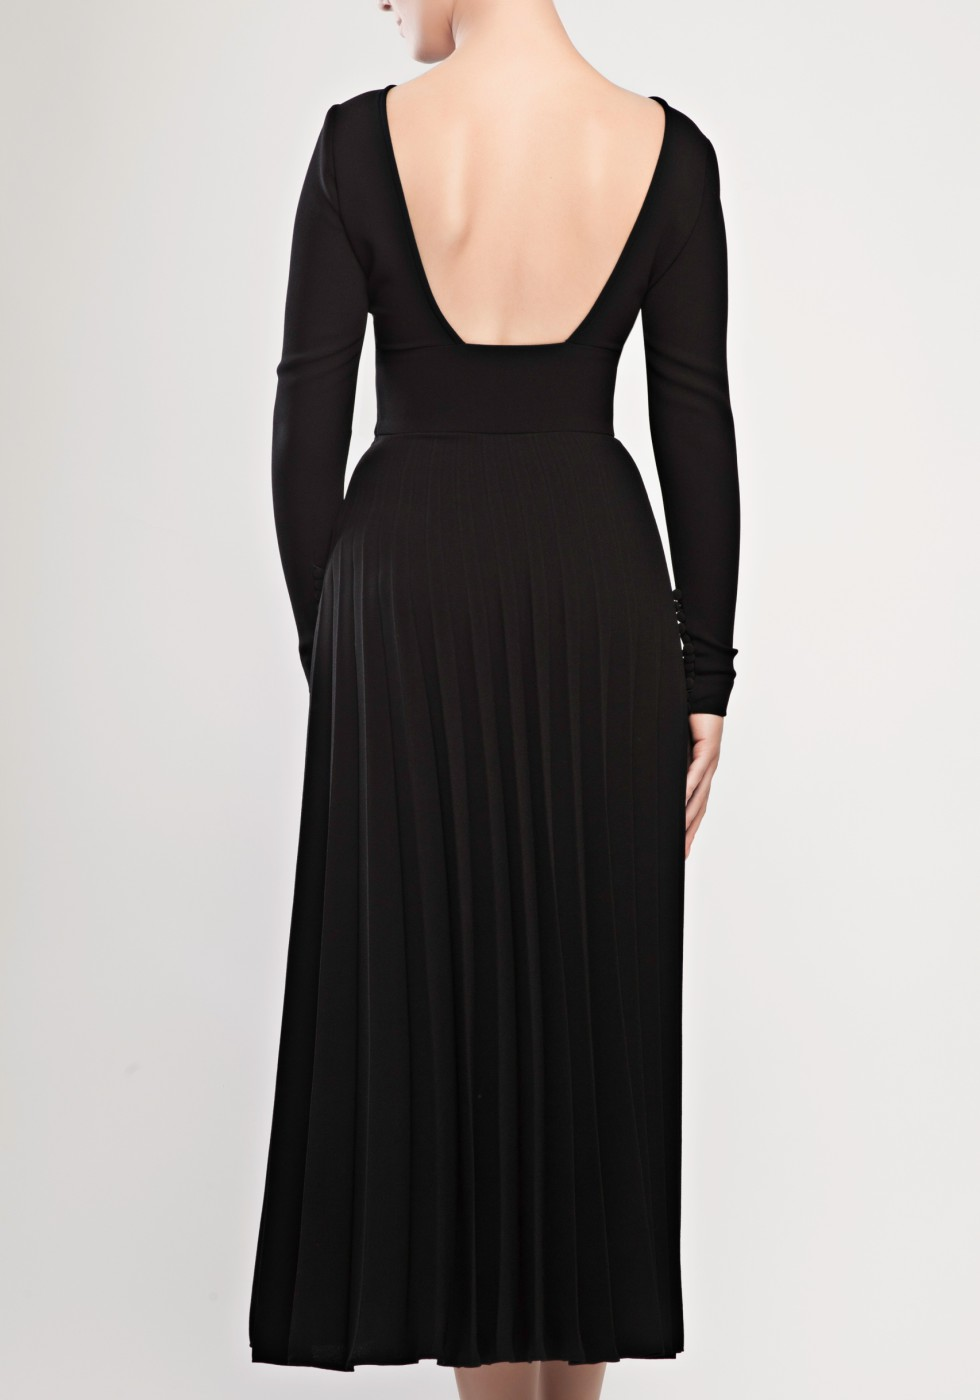 Pleated crepe dress with open back